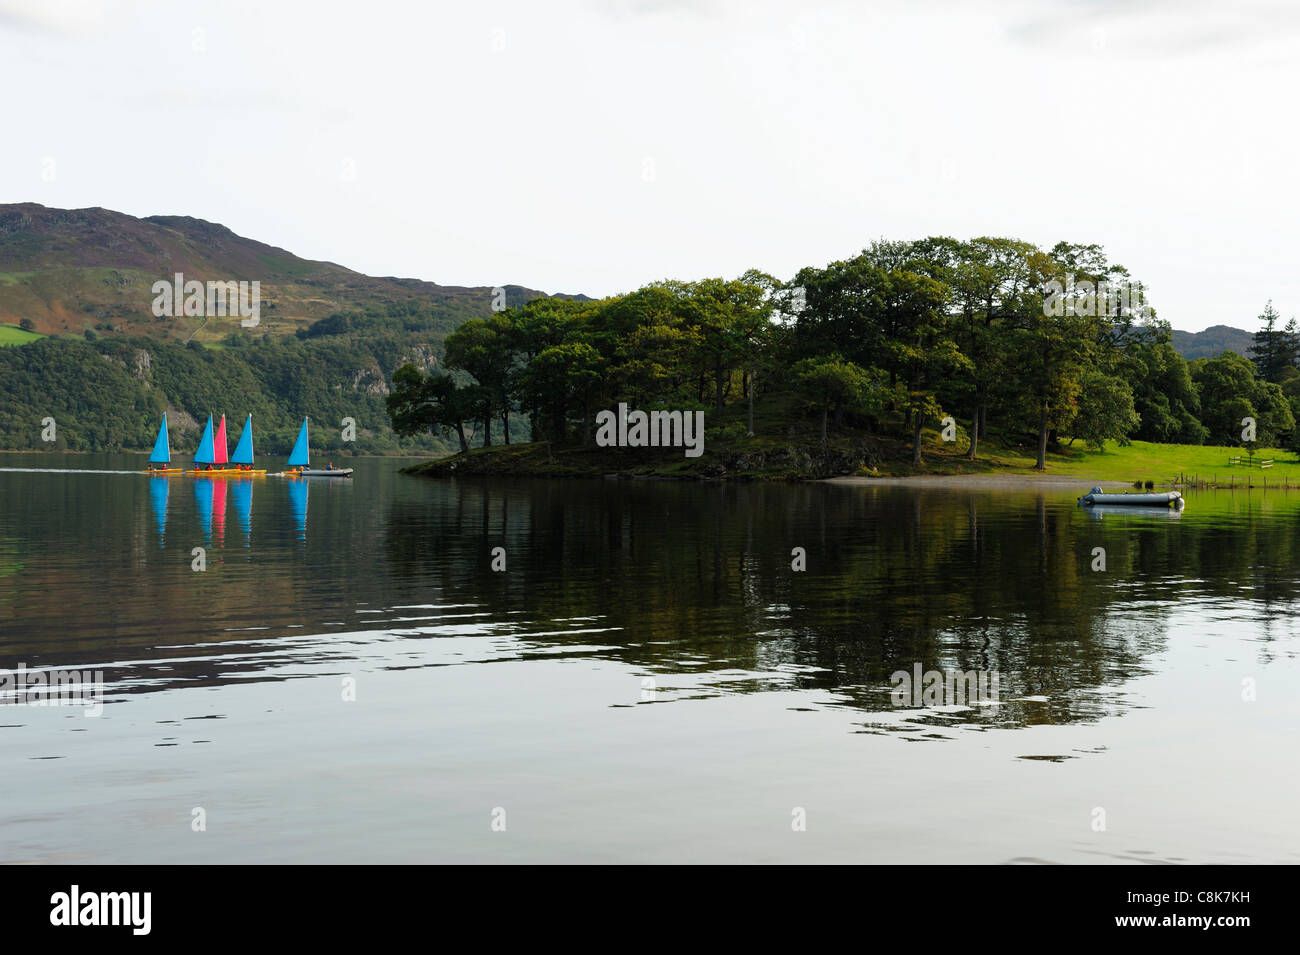 Sailing boats in Otterbield Bay Derwent Water Lake District - Stock Image